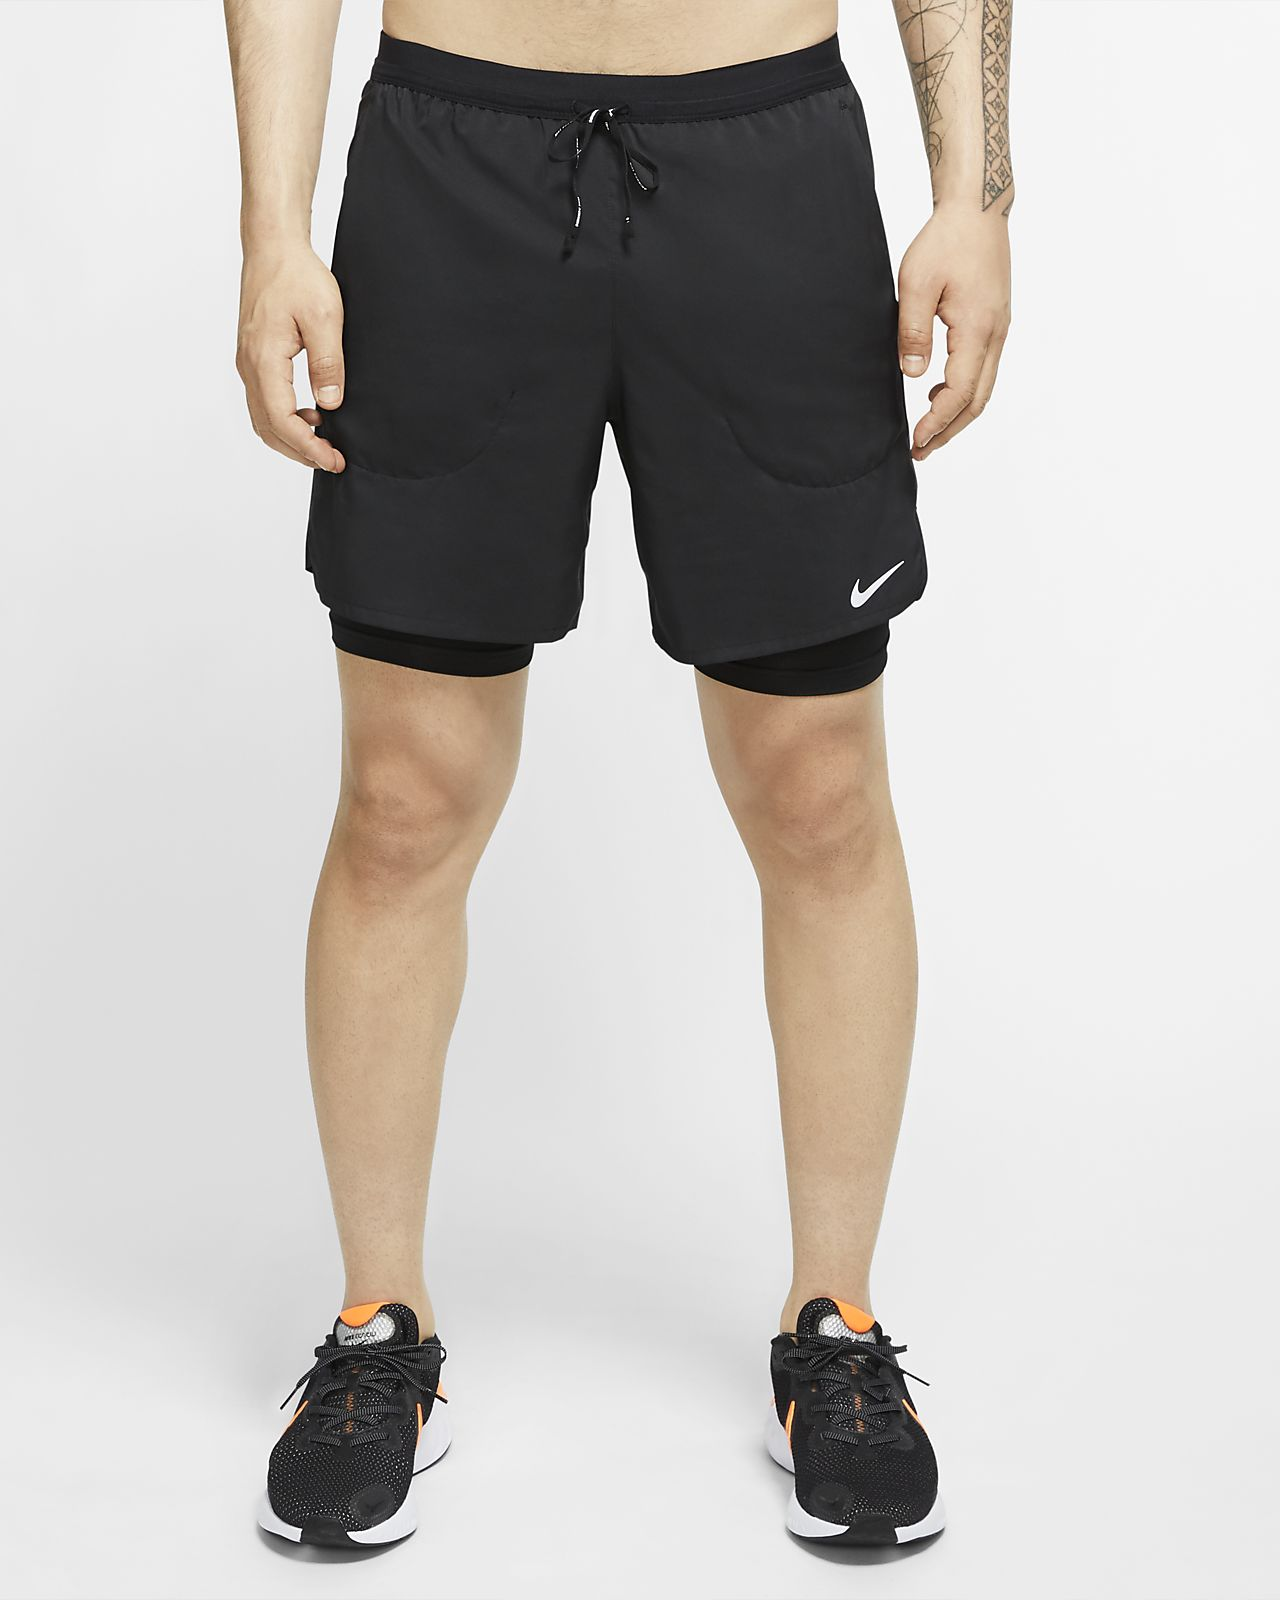 Nike Flex Stride Men's 18cm (approx.) 2-in-1 Running Shorts